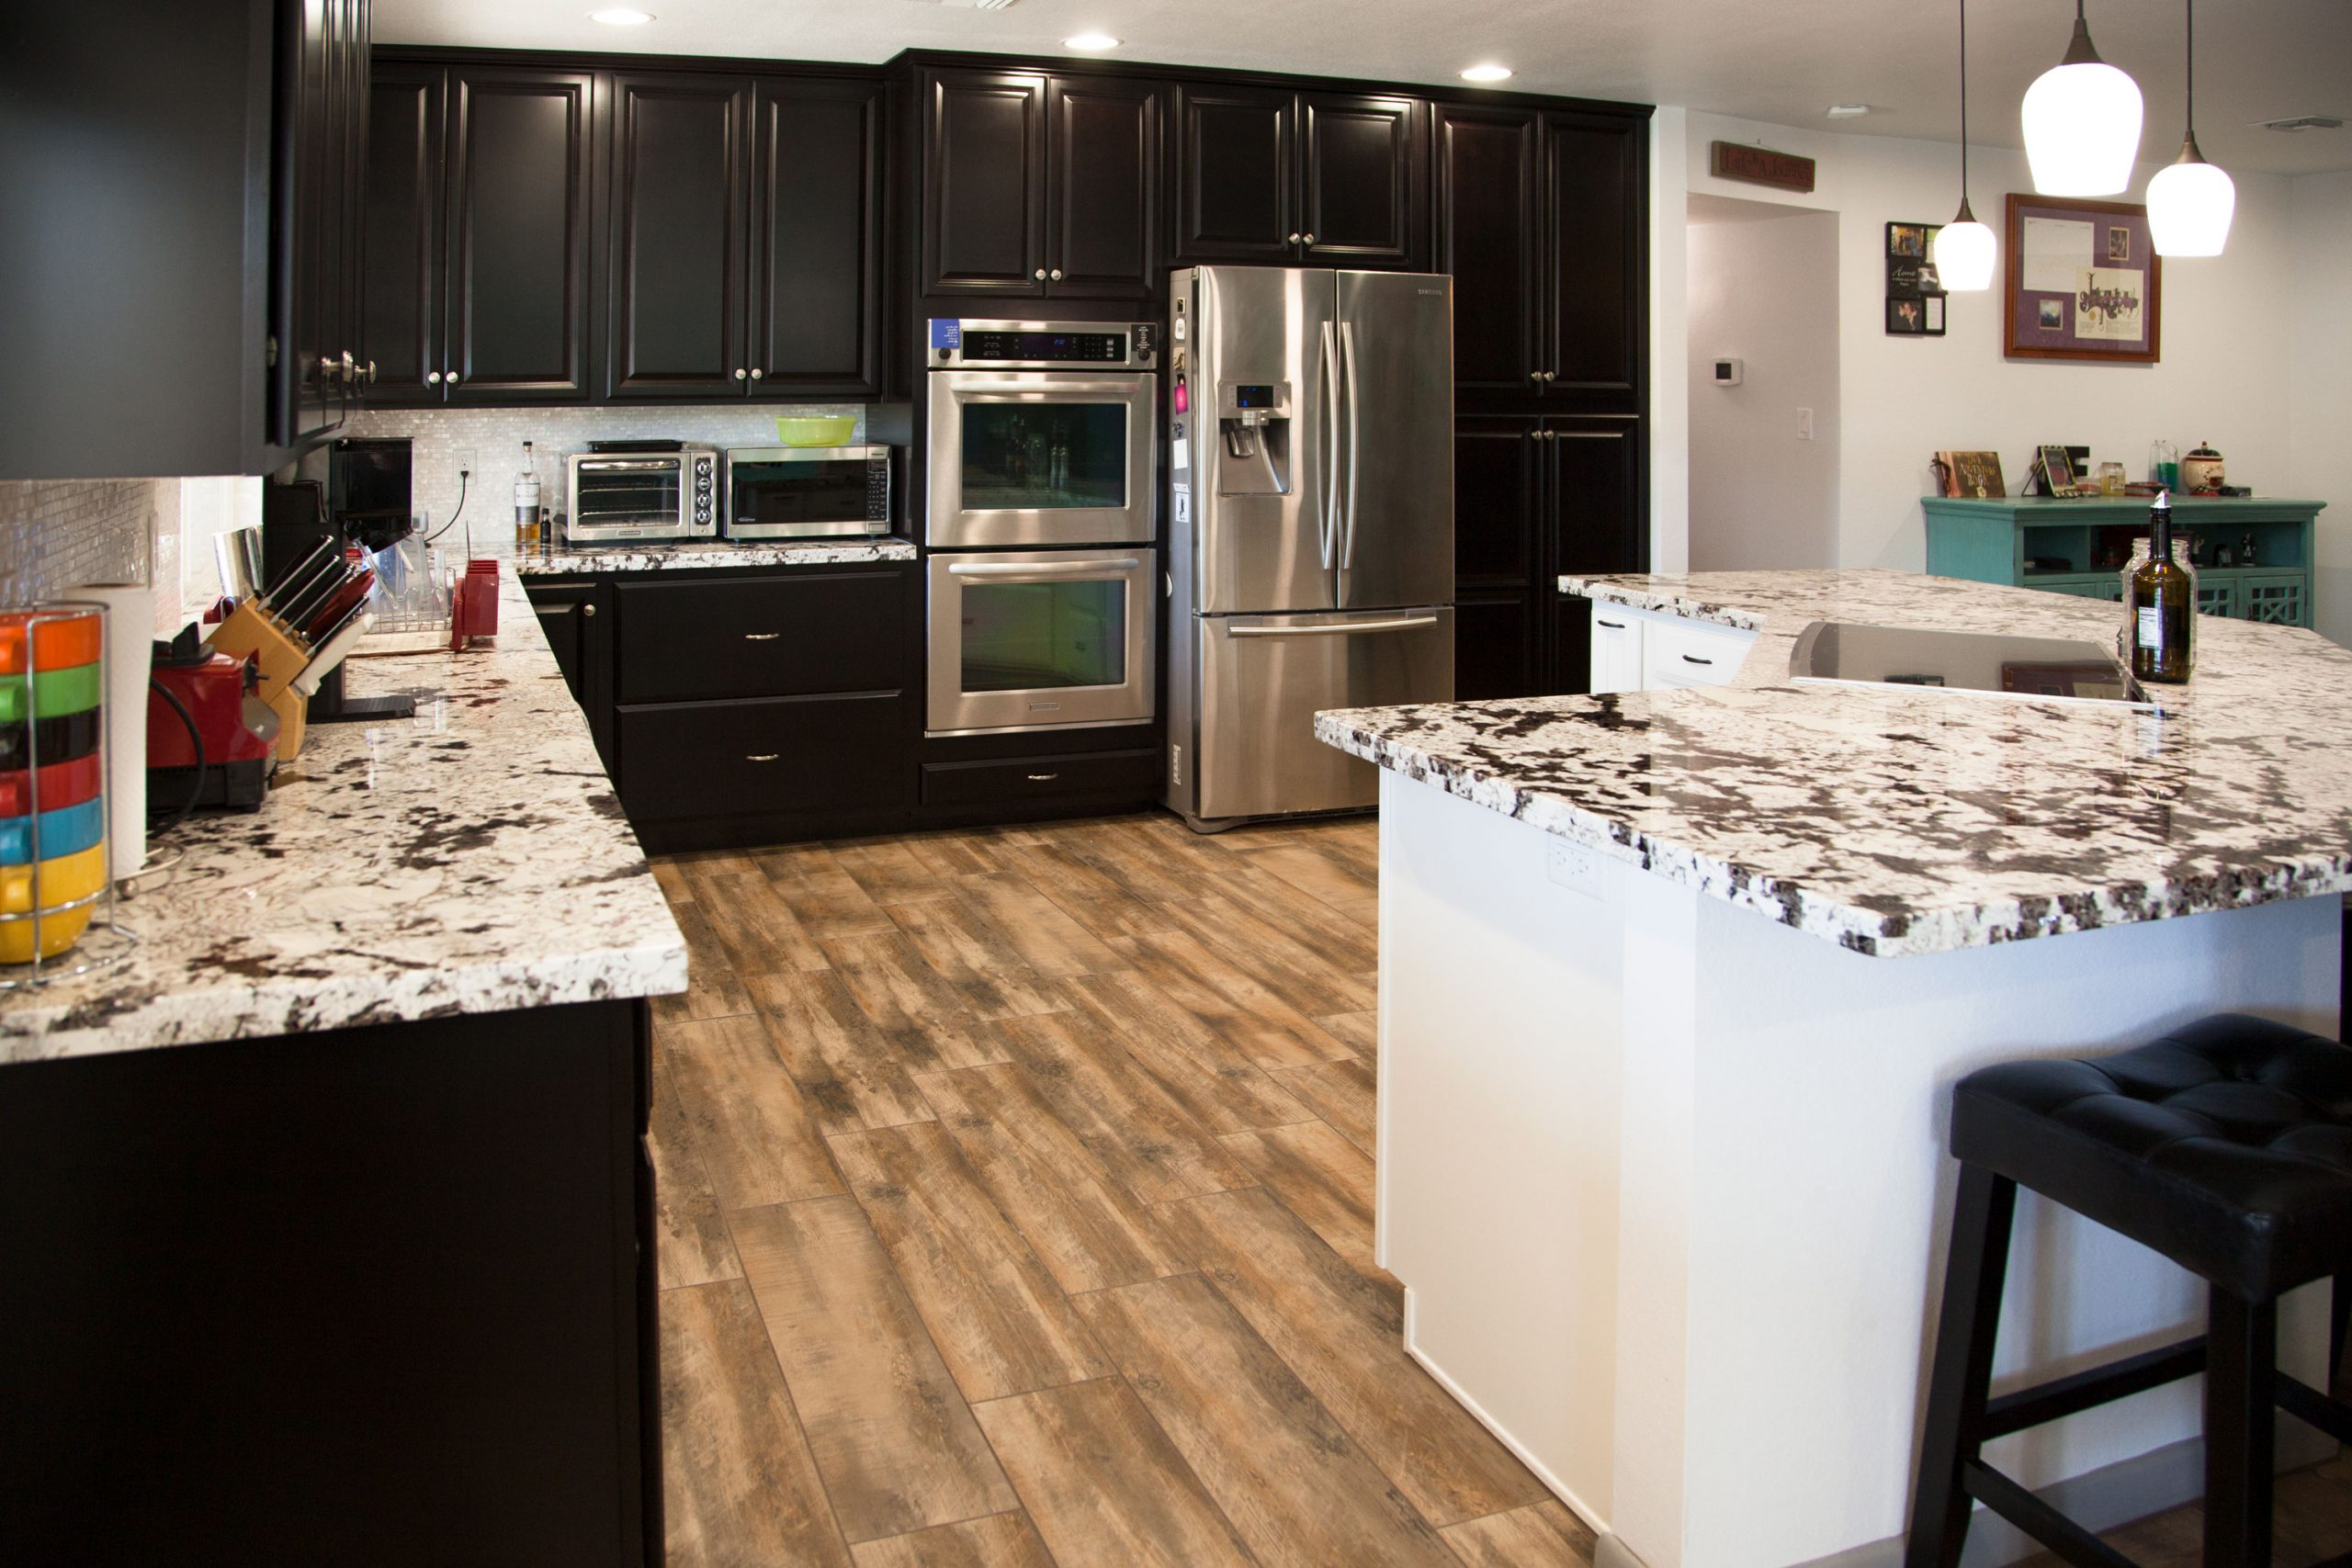 How You Can Install Cabinets